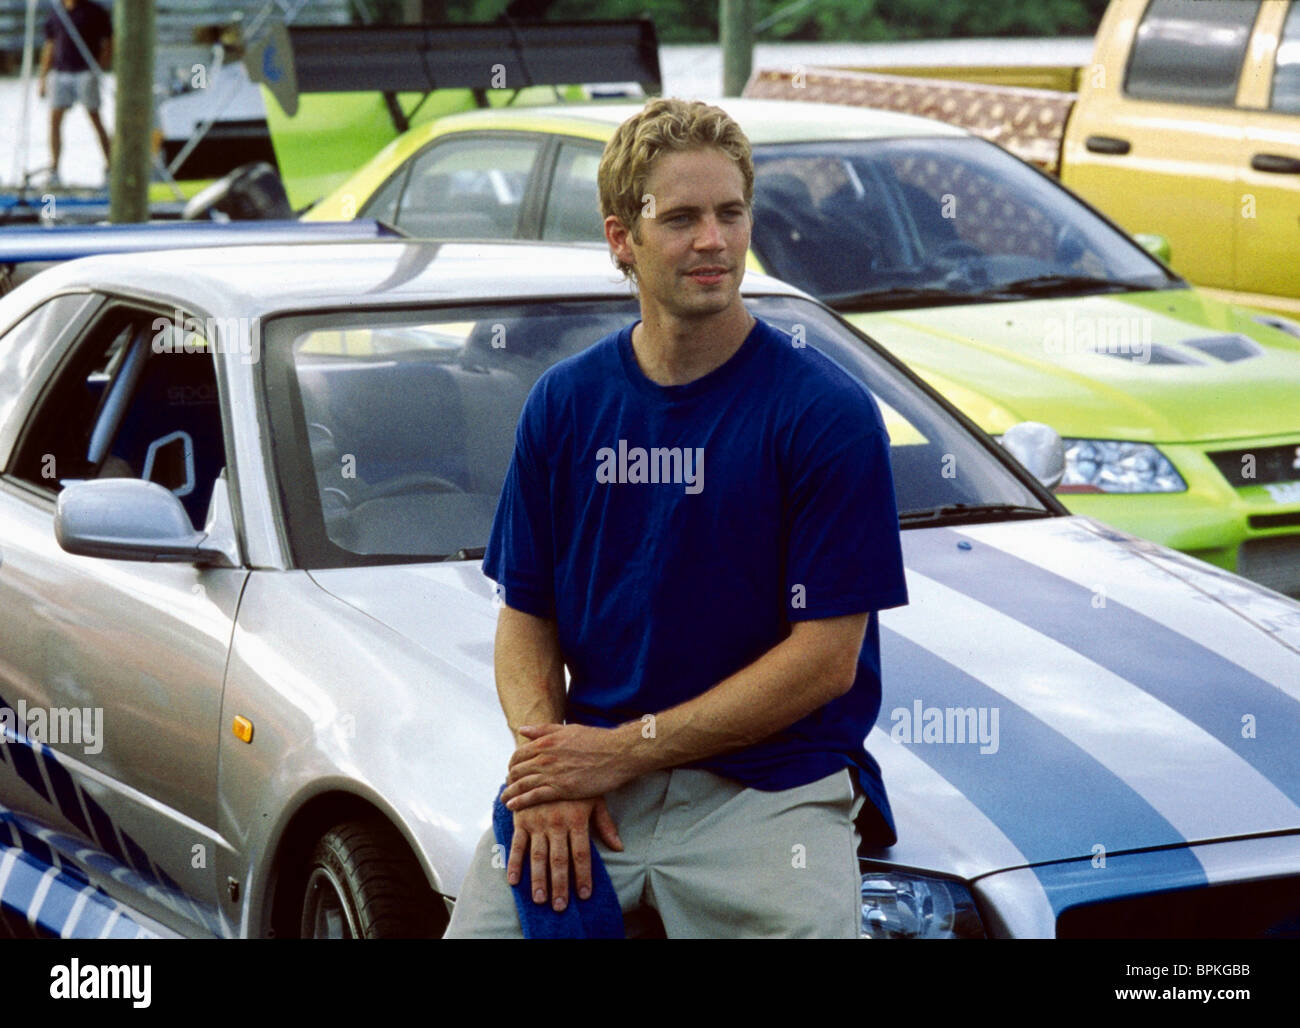 paul walker 2 fast 2 furious the fast and the furious 2 2003 stock photo royalty free image. Black Bedroom Furniture Sets. Home Design Ideas